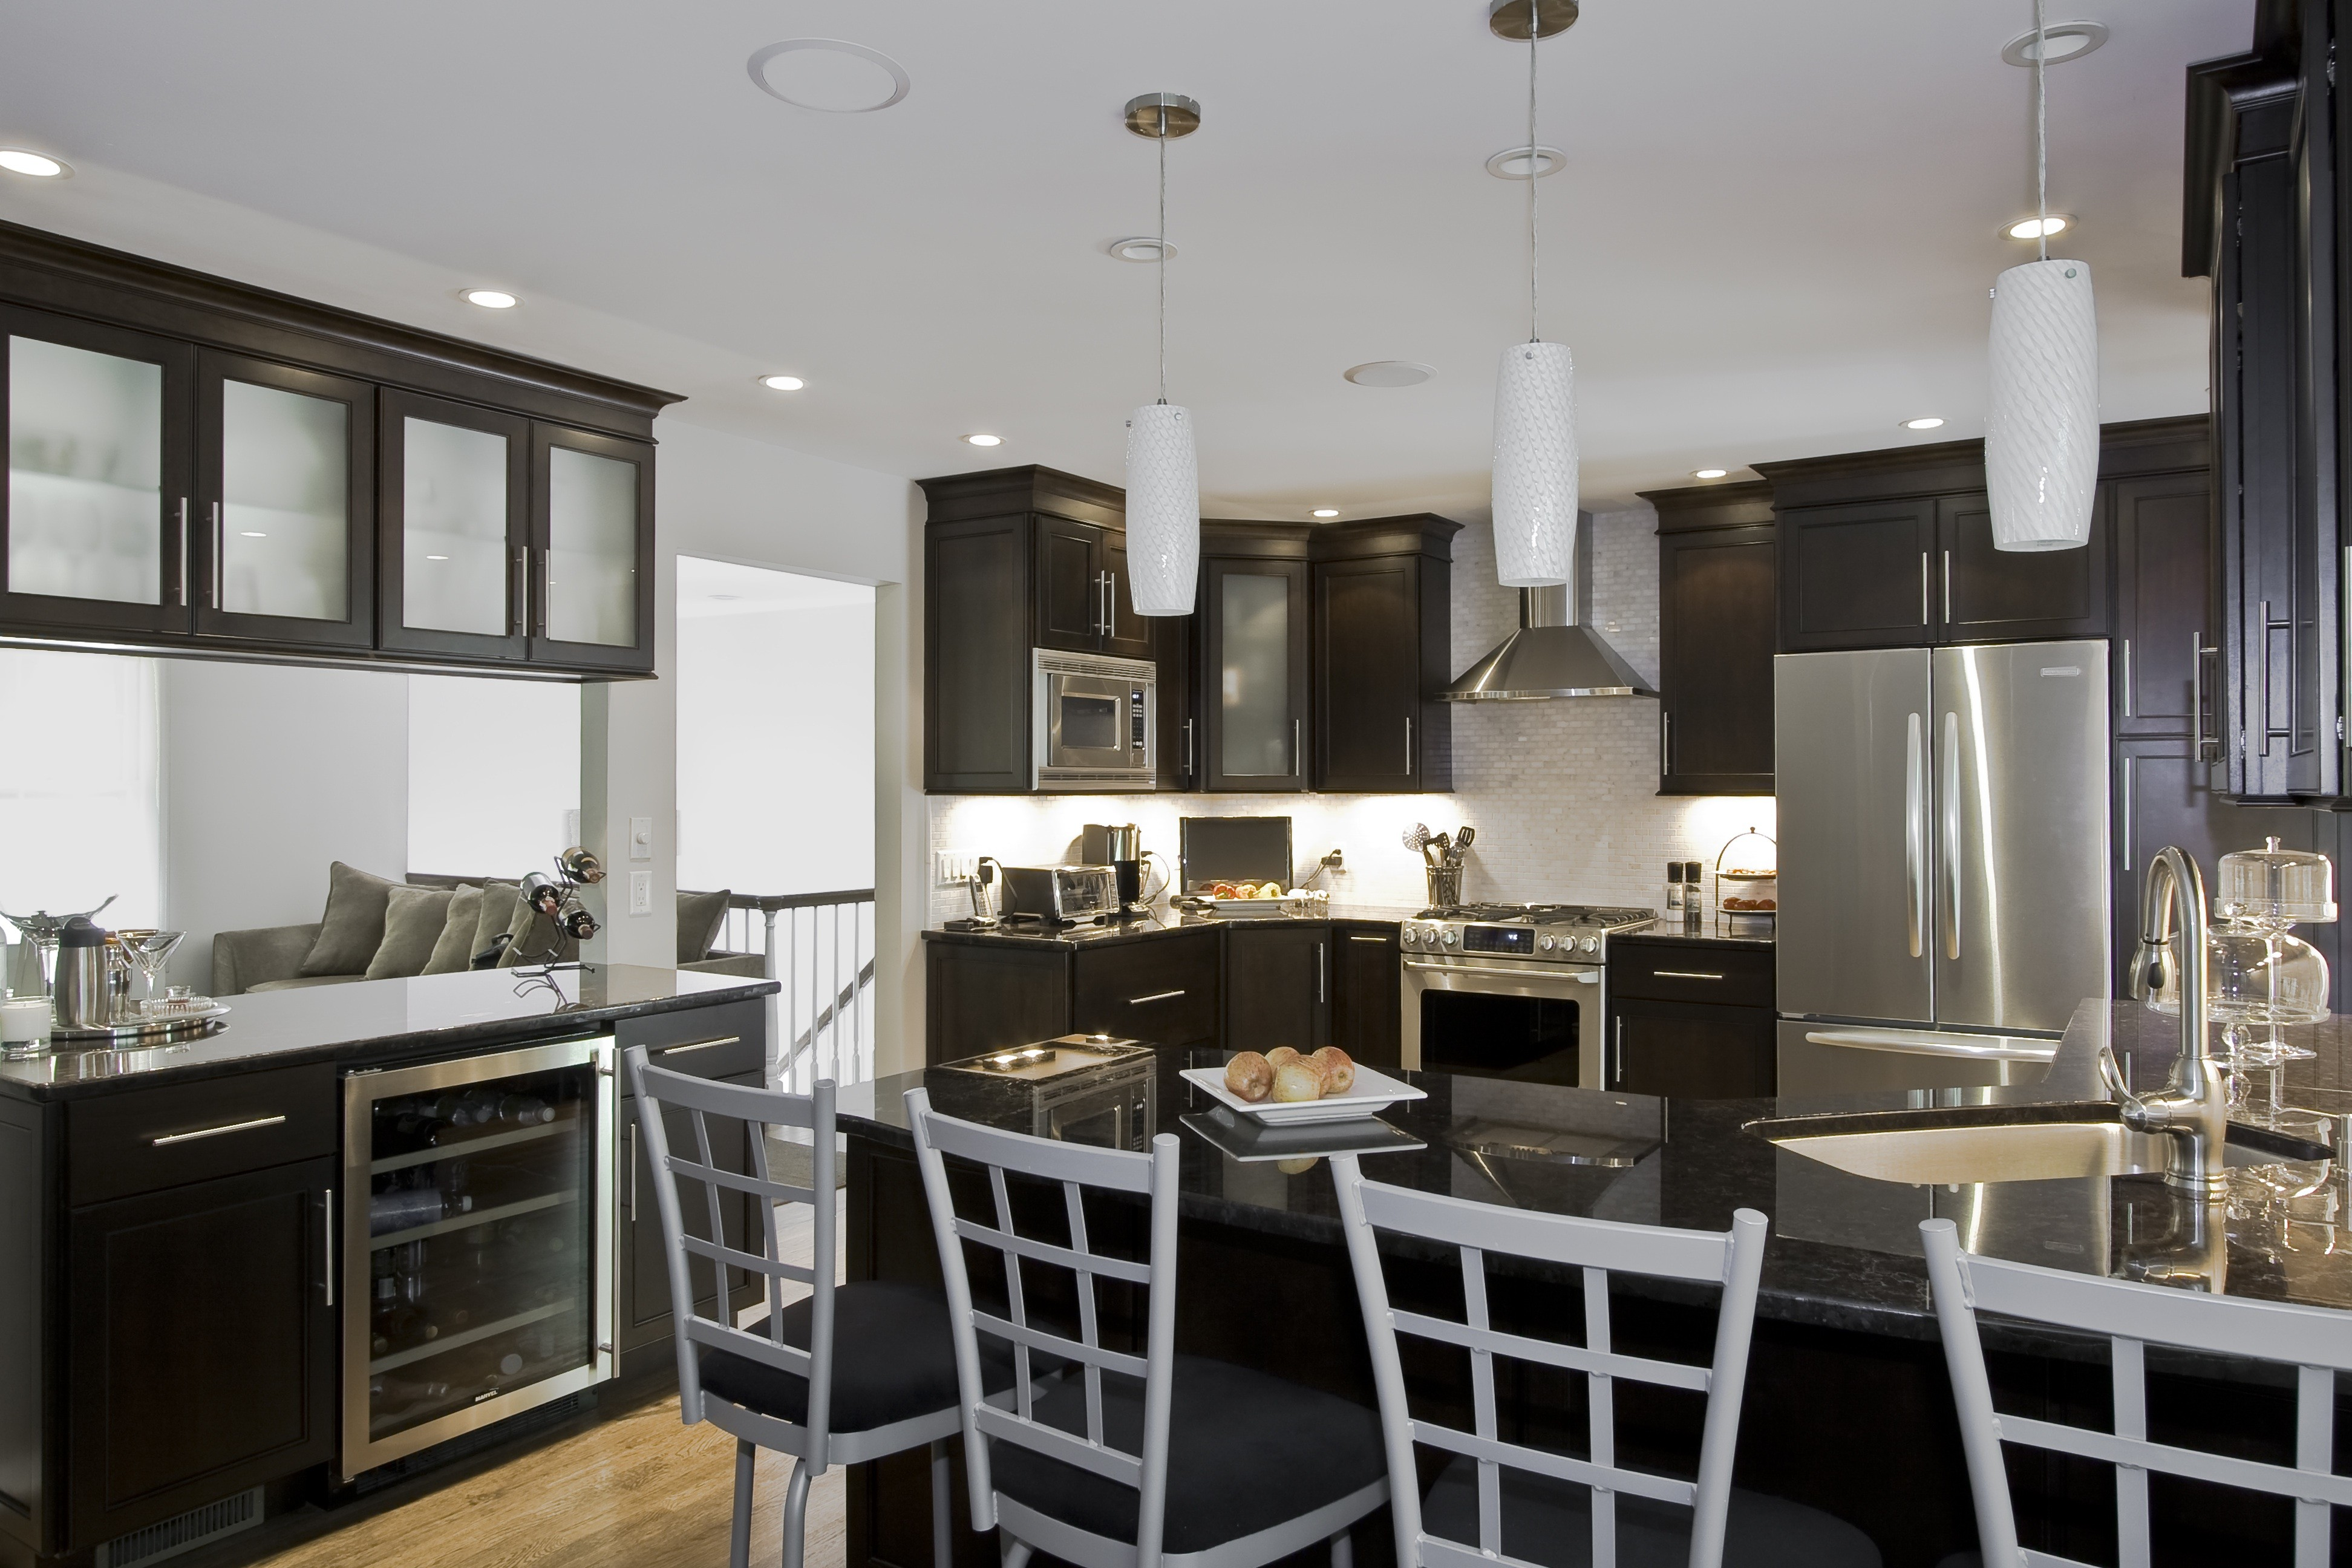 designer kitchen and bath freehold nj which monmouth county kitchen contractor is best for you 980